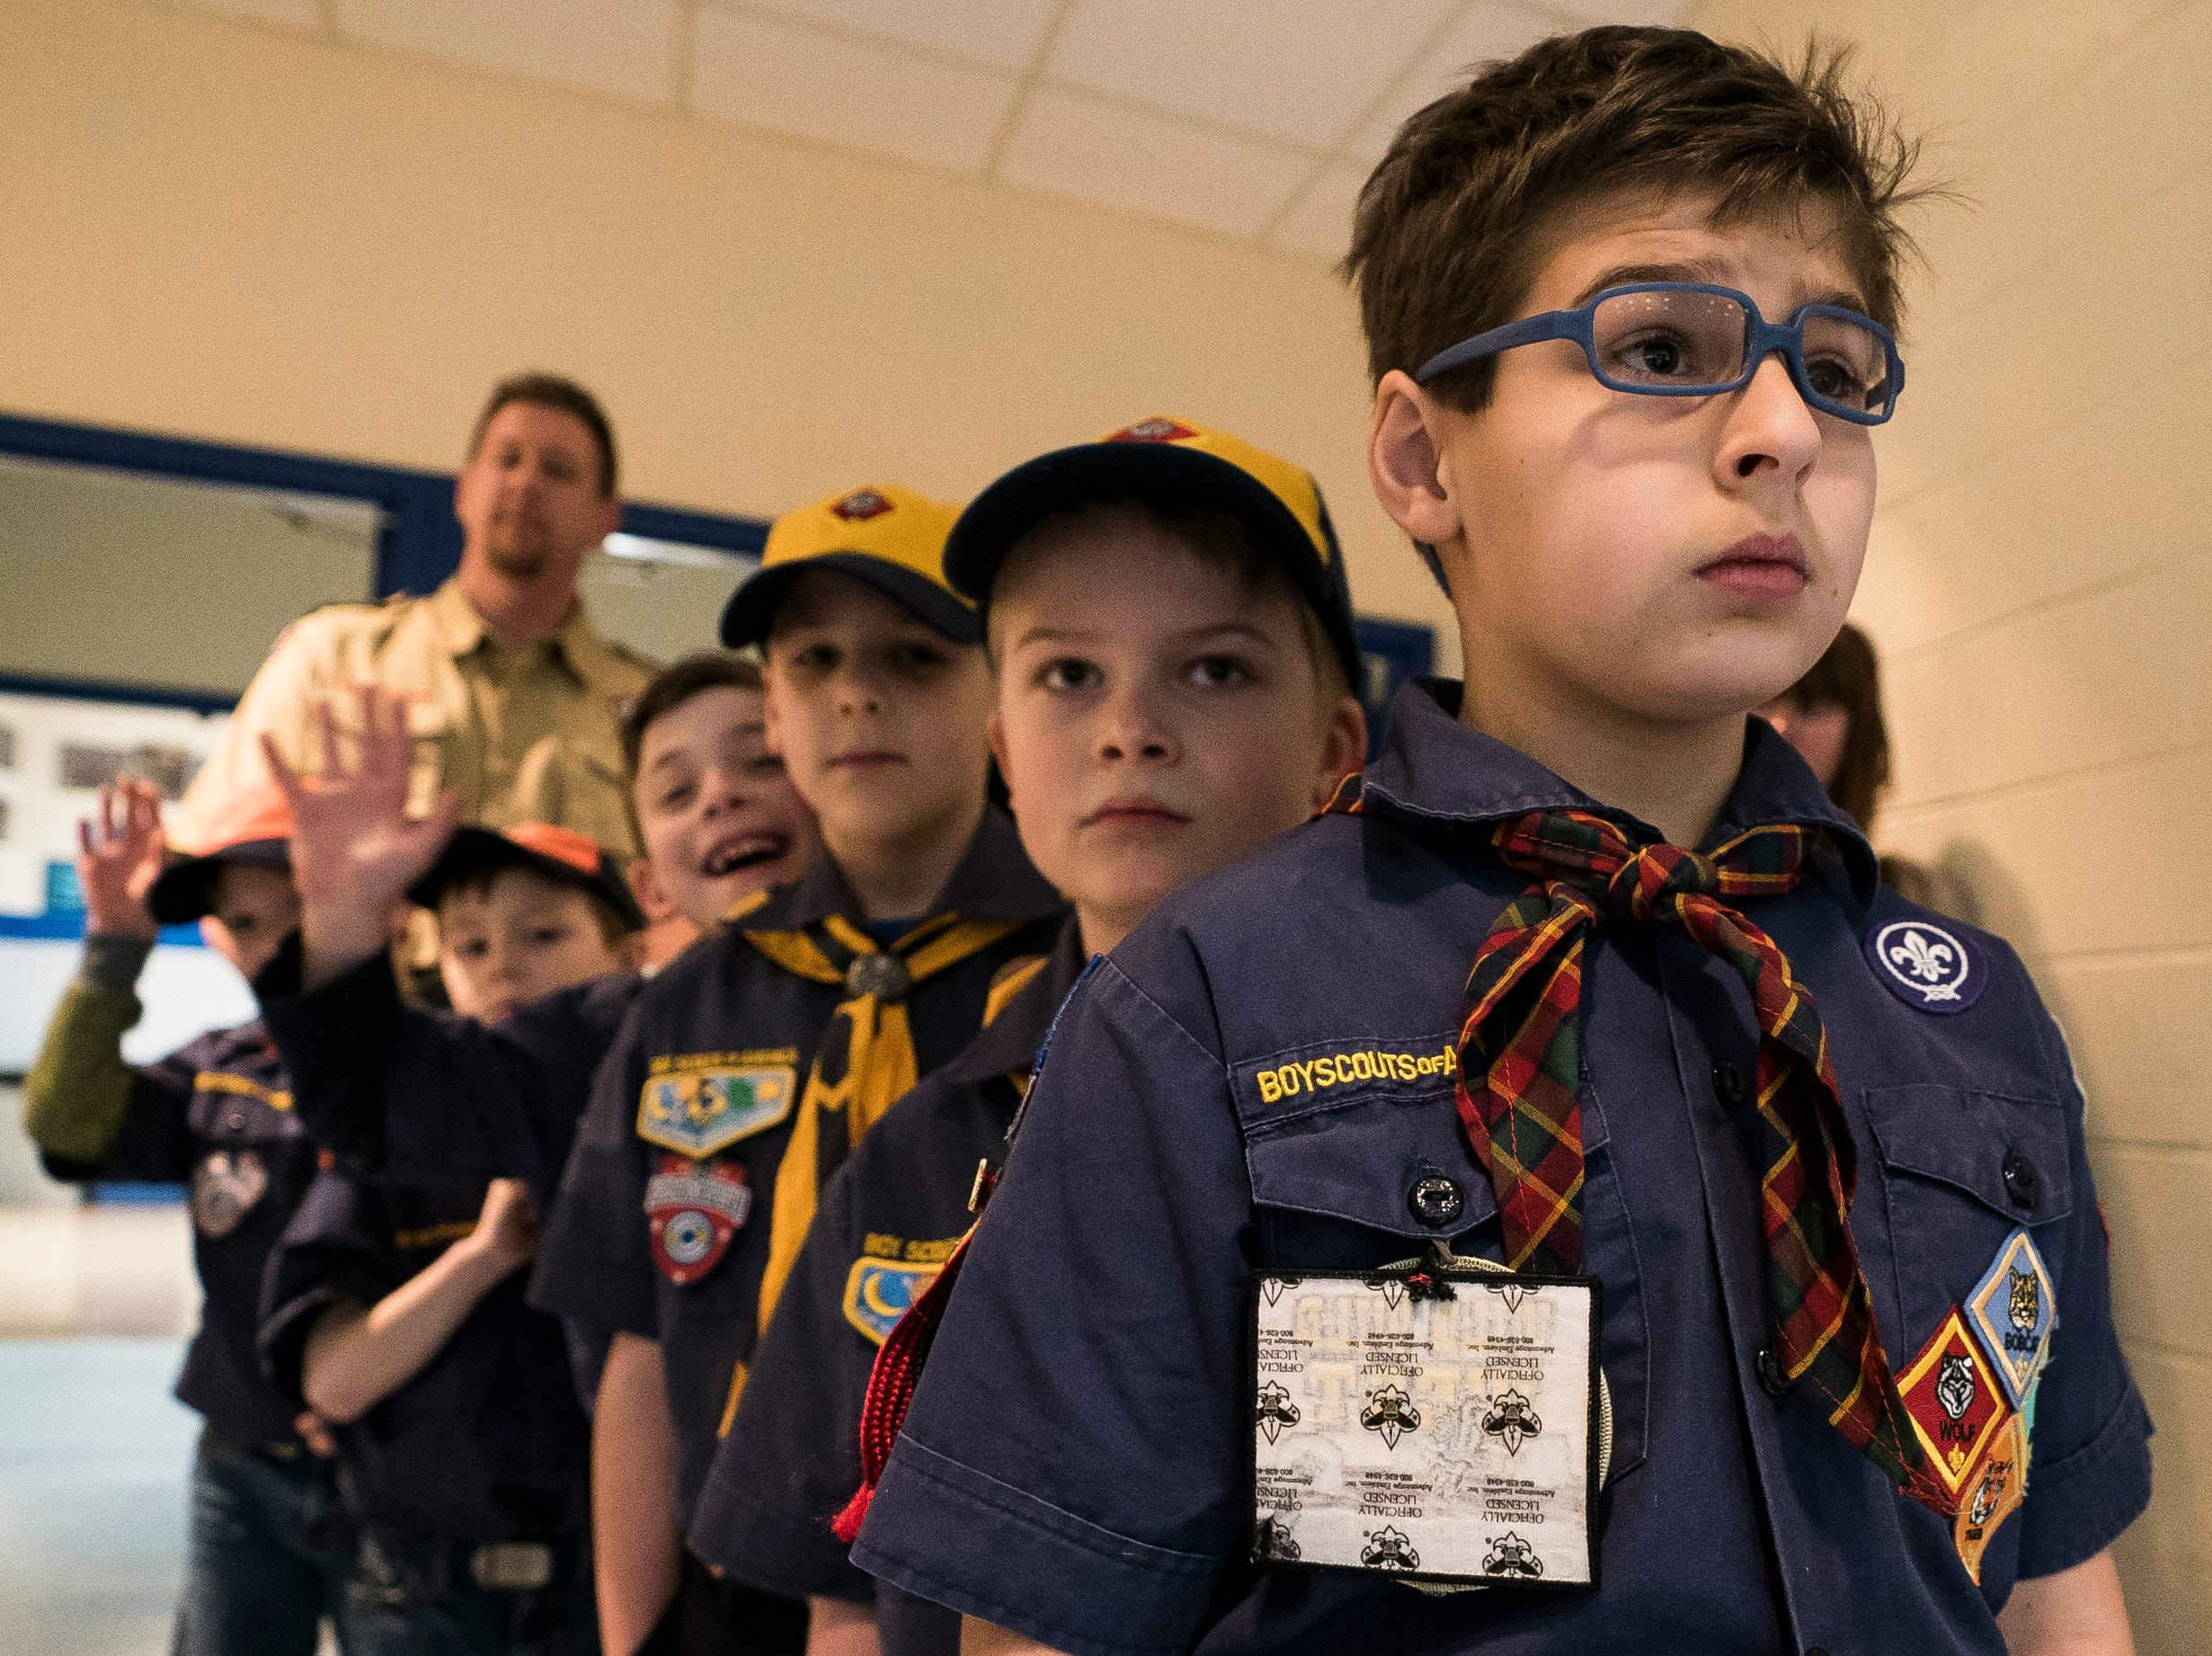 Right, Cub Scout Oliver Levi, 10, gets ready to lead Pack 620 into the auditorium at Mount Mansfield Union High School in Jericho on Tuesday, March 5, 2019, for the pledge of allegiance to start Town Meeting Day.